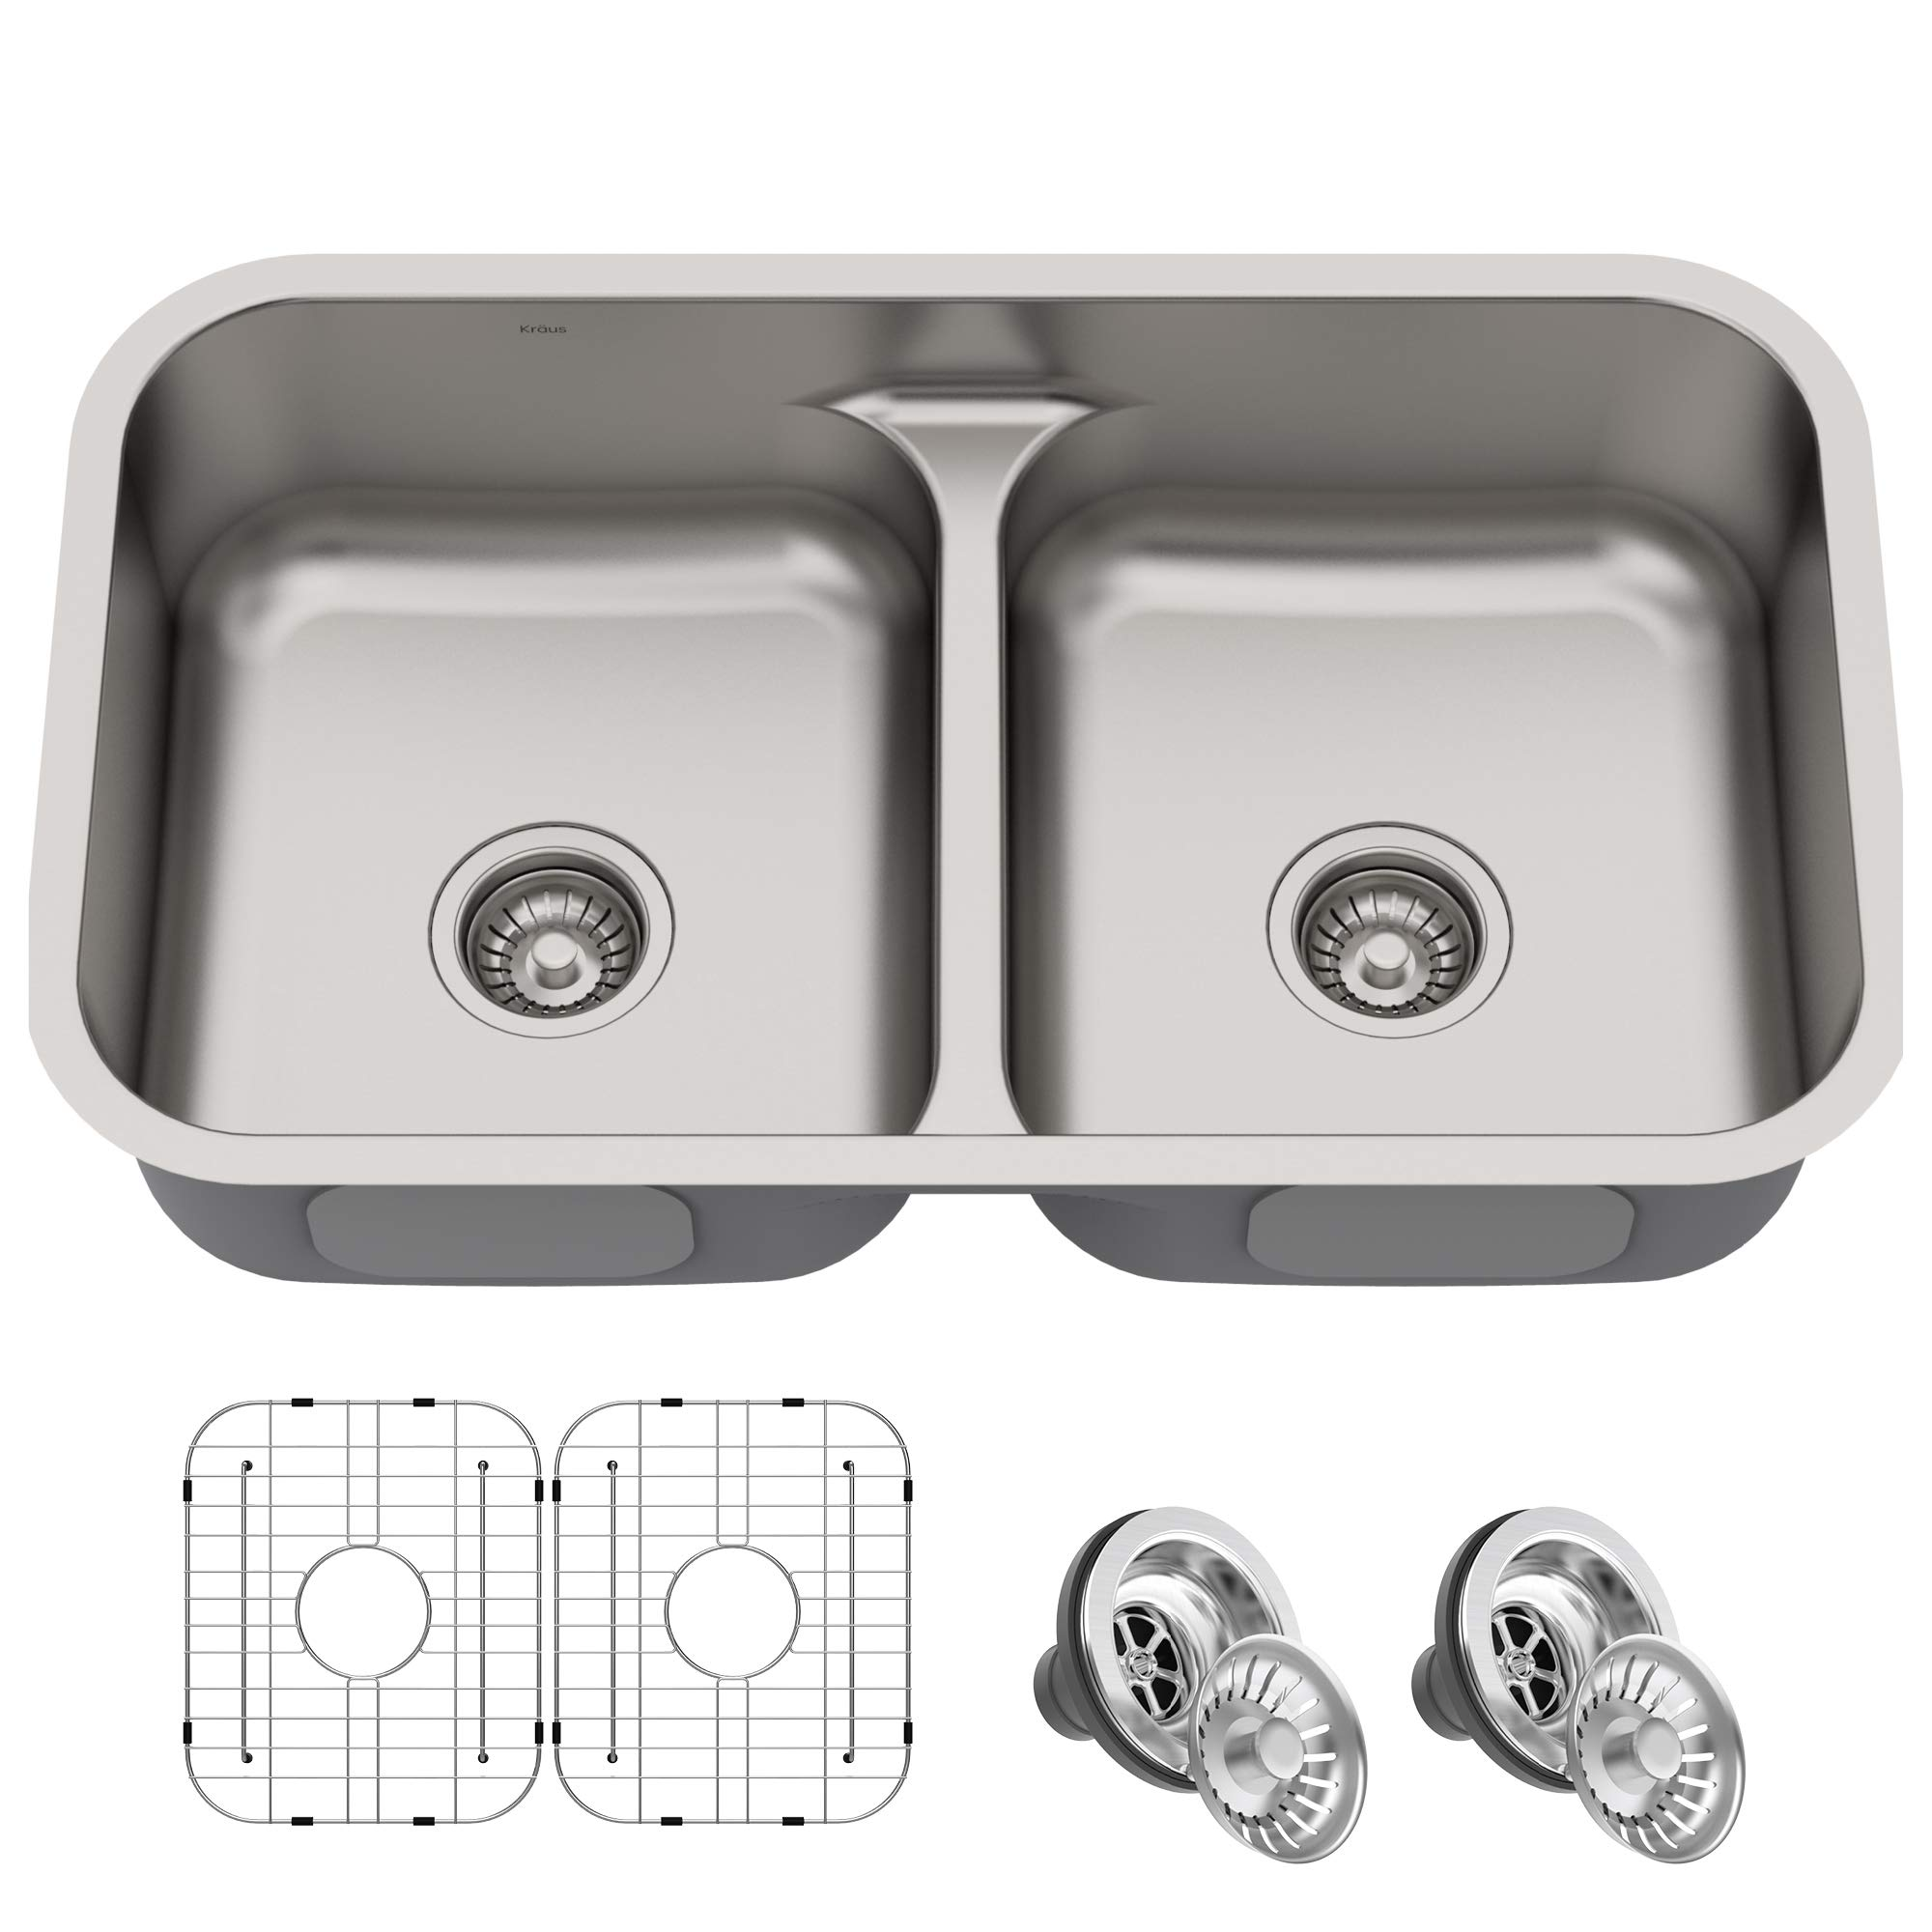 KRAUS KBU32 Premier 32-inch 16 Gauge Undermount 50/50 Double Bowl Kitchen Sink with Smart Low Divider by Kraus (Image #1)